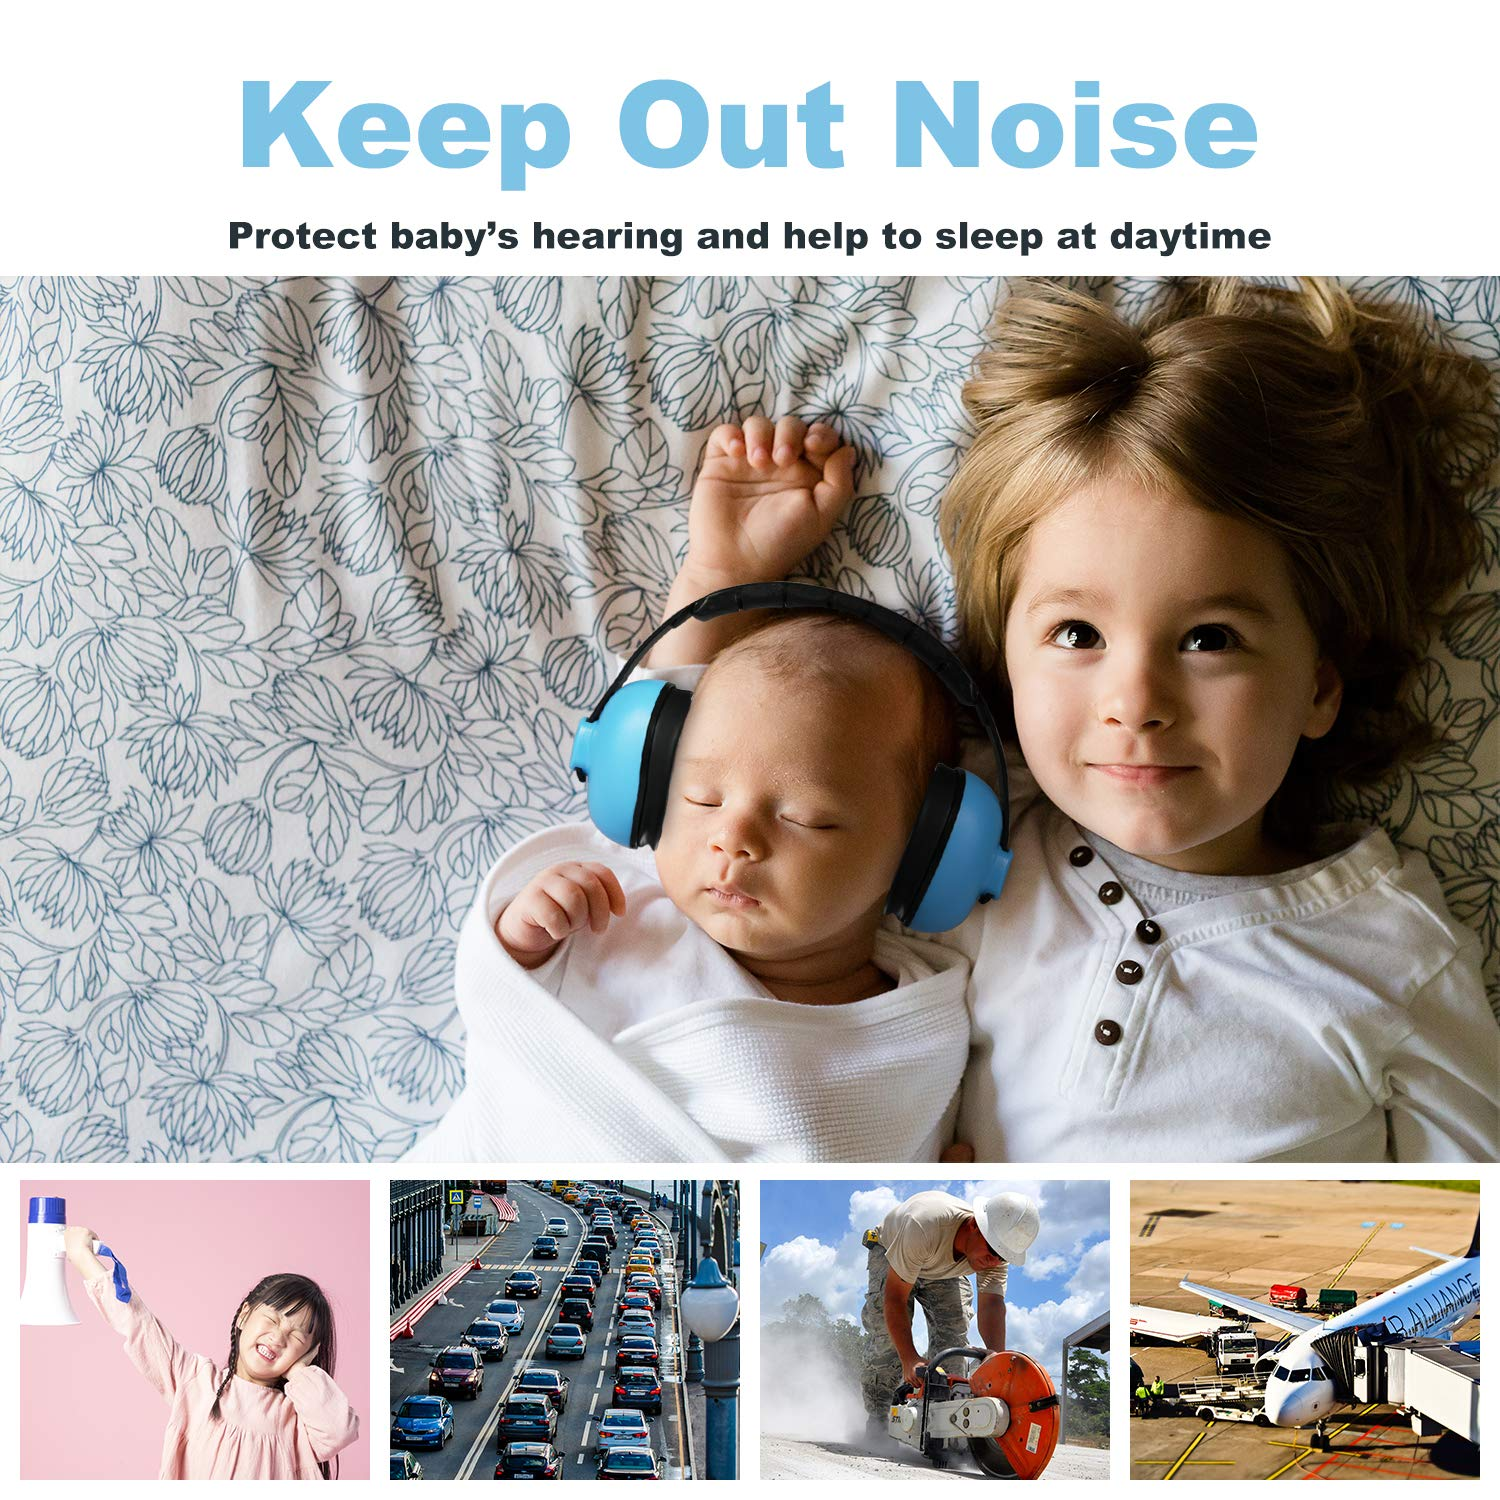 Baby Ear Protection Earmuff Muffs Sound Hearing Noise Airplane Travel for Infant Kids Toddler Newborn Child Babies by JOYNCLEON (Image #5)